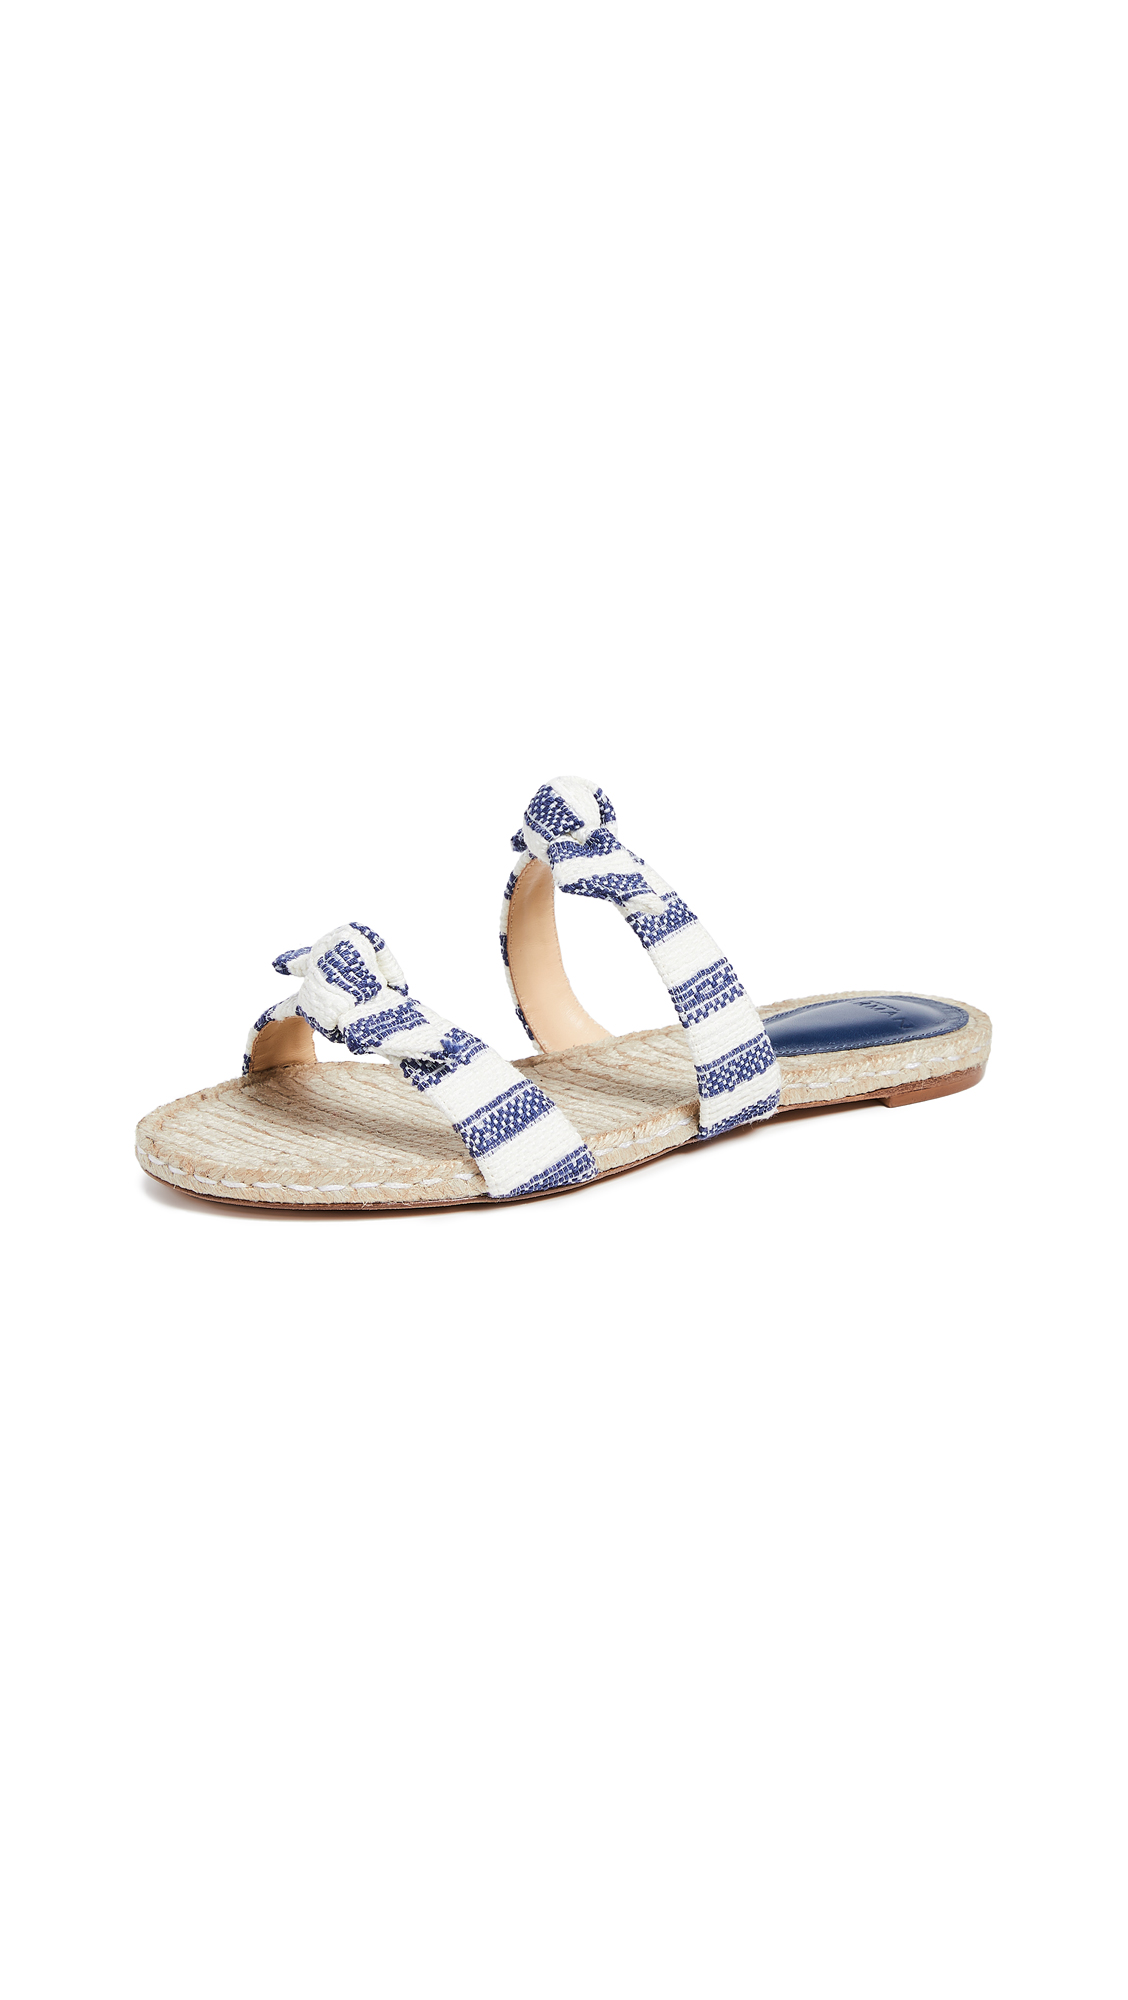 Alexandre Birman Clarita Braided Slide Sandals - Nightsky